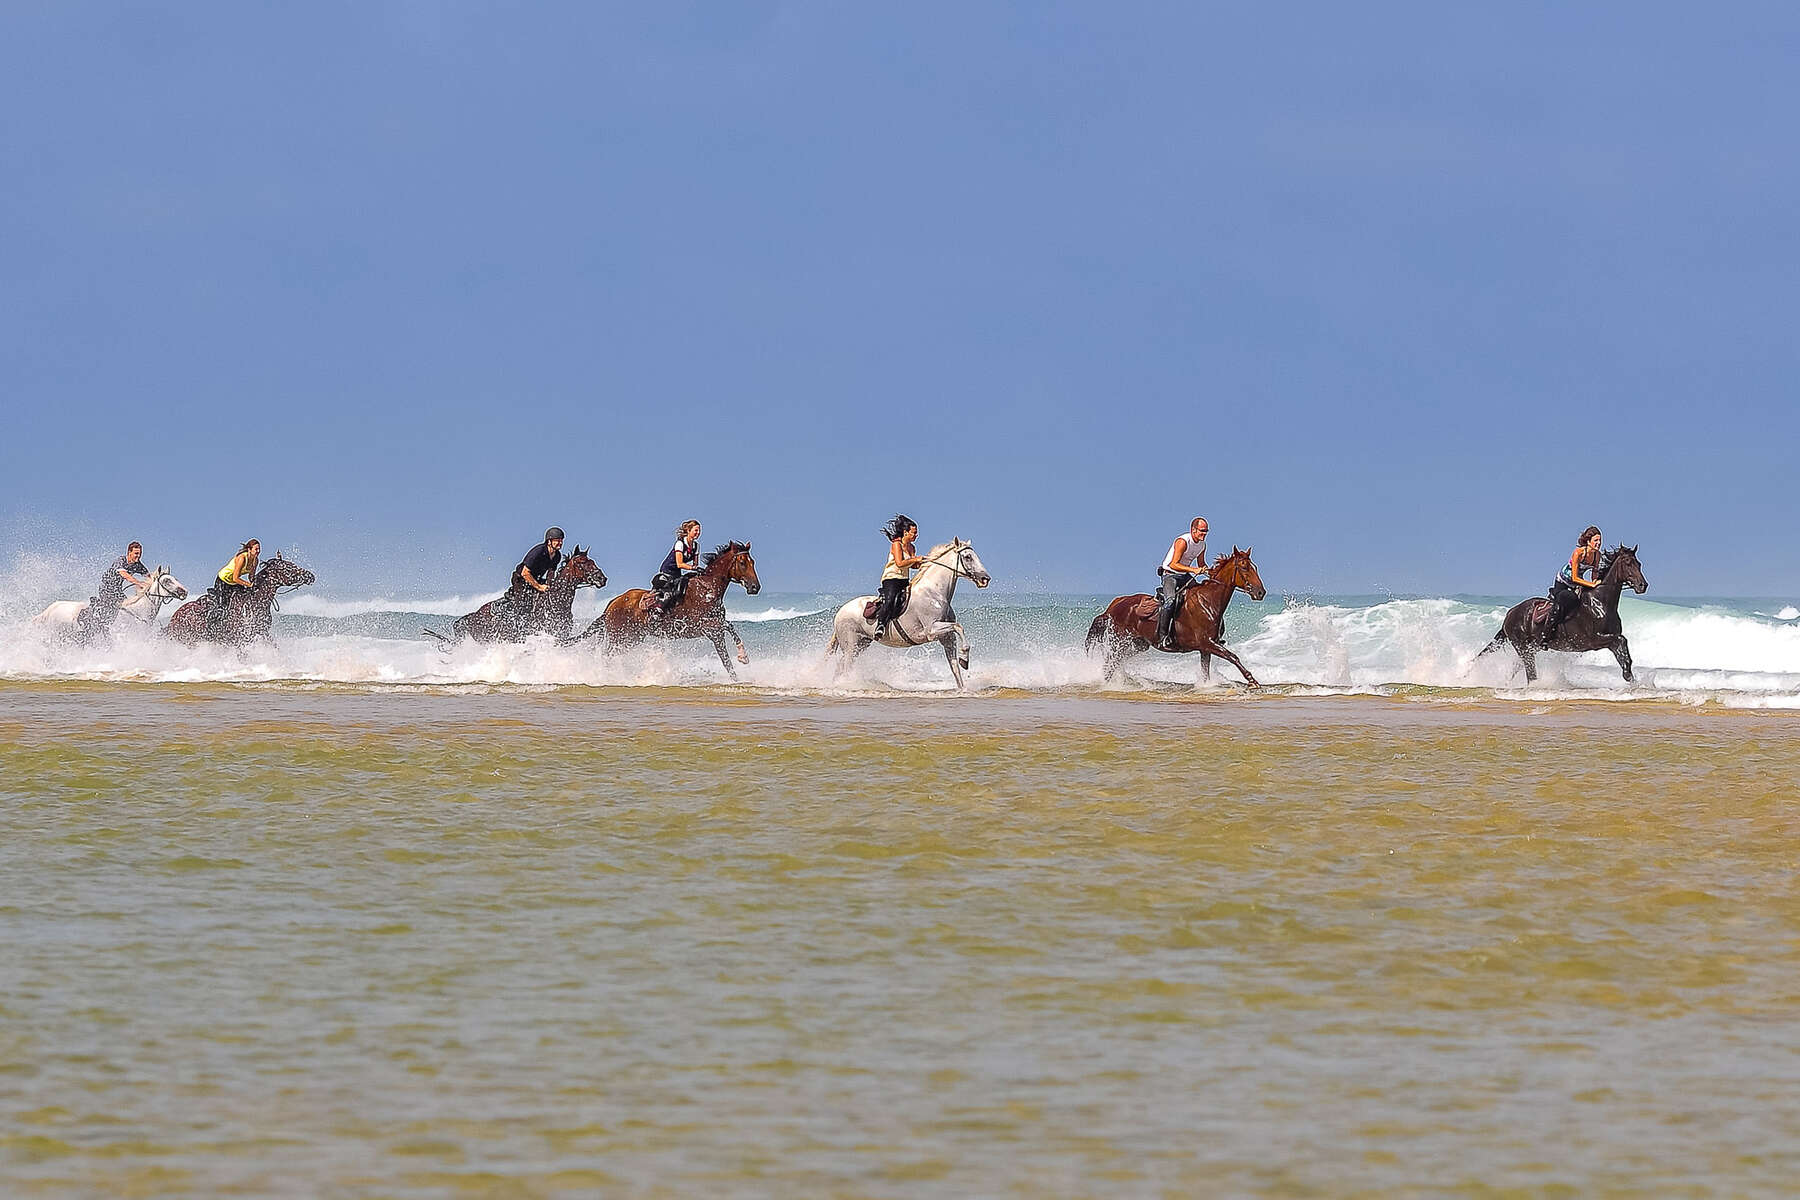 Horseback riders riding in the Atlantic Ocean in France